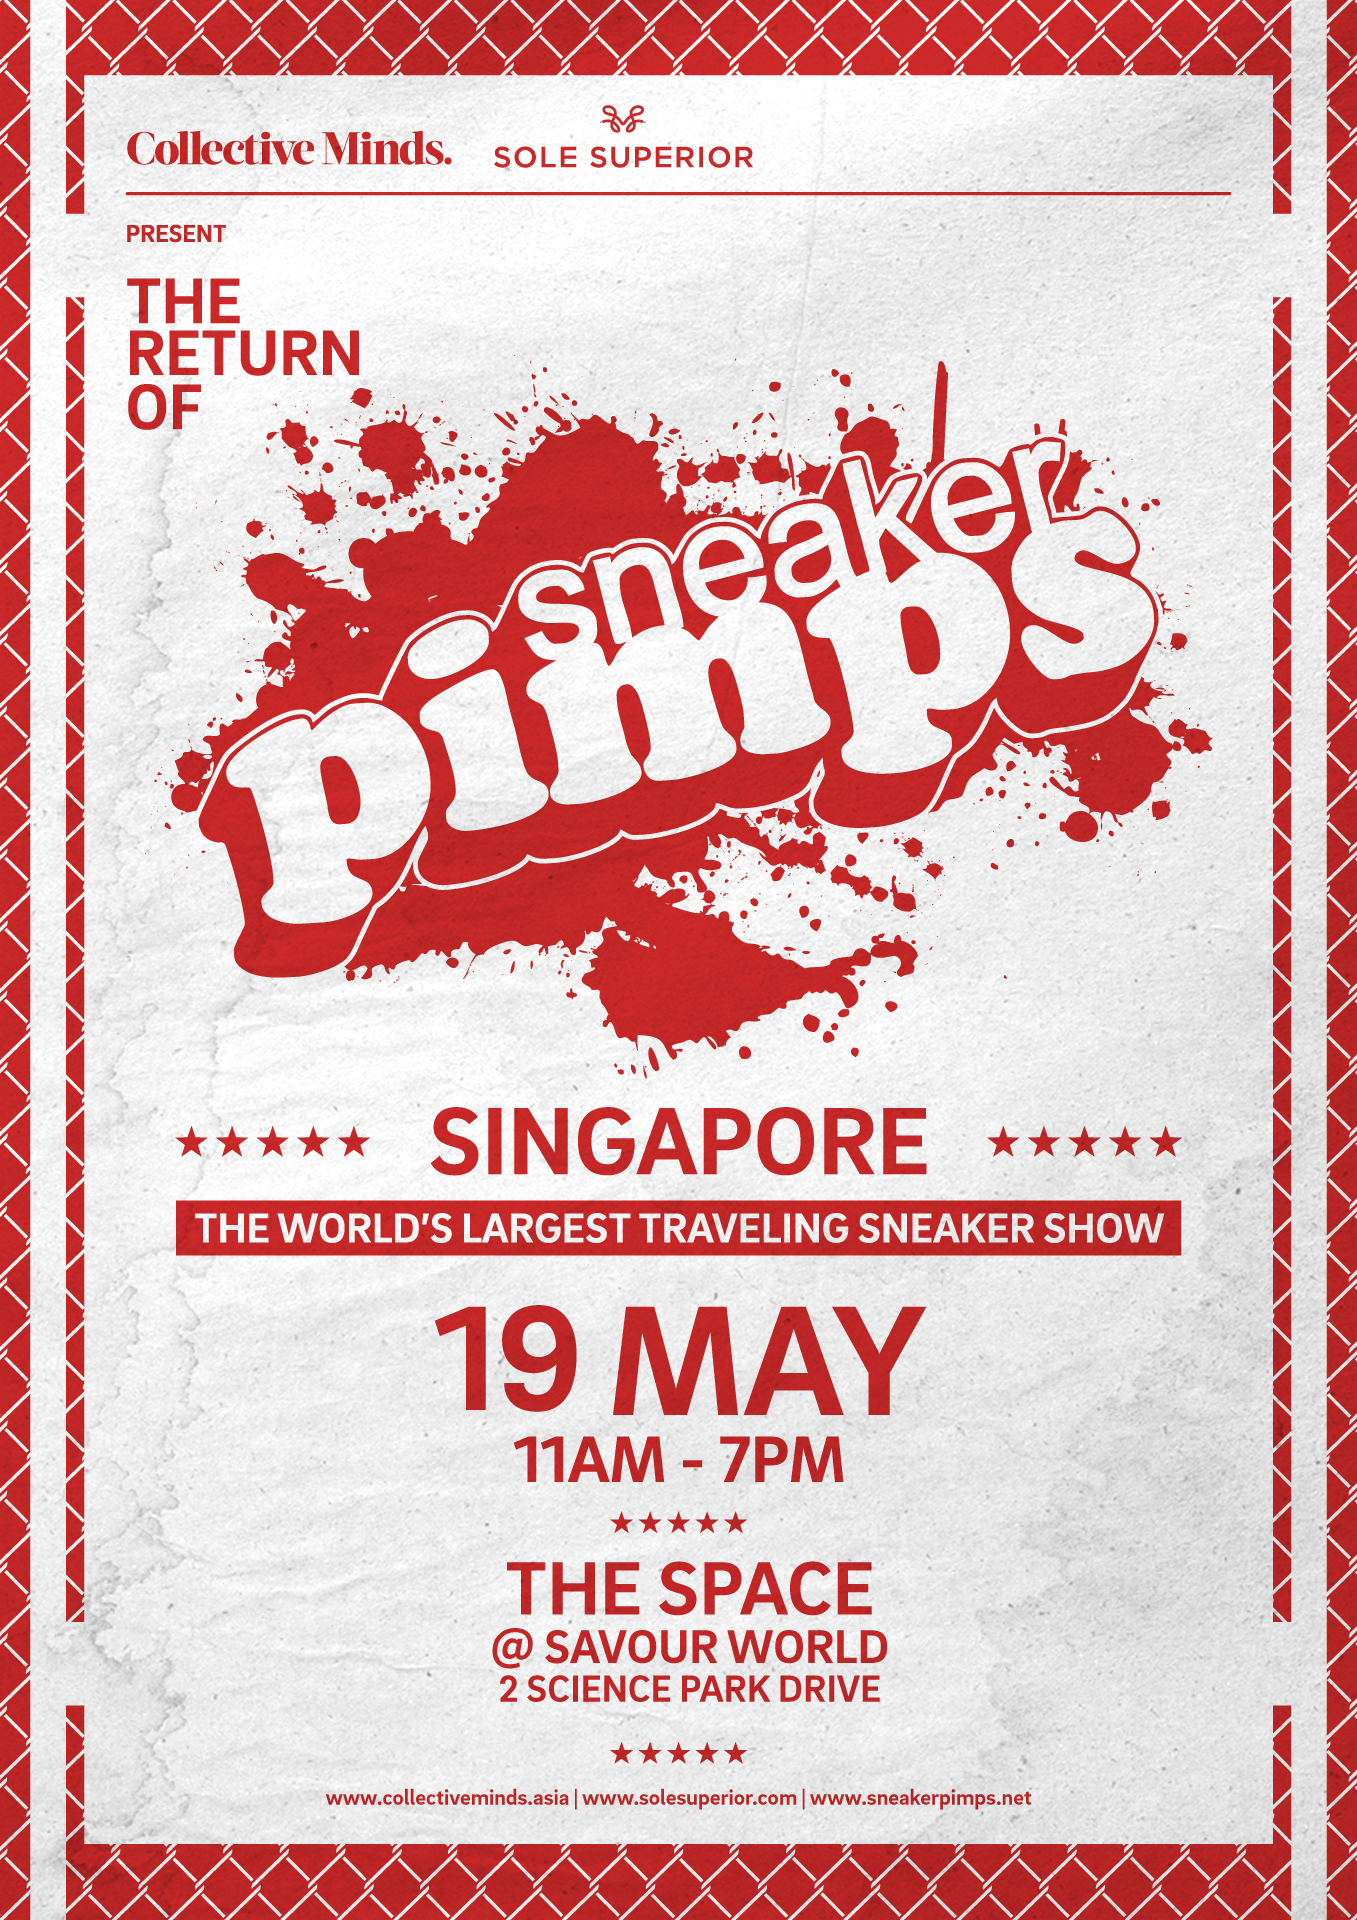 Sneaker Pimps - Sneaker Pimps is the World's Largest Traveling Sneaker Show featuring over +500 rare, vintage, and limited edition sneakers under one roof.By partnering with local brands and distributors Collective Minds was able to sell over 1,500 tickets to the hyper reactive sneaker and streetwear community in Singapore.